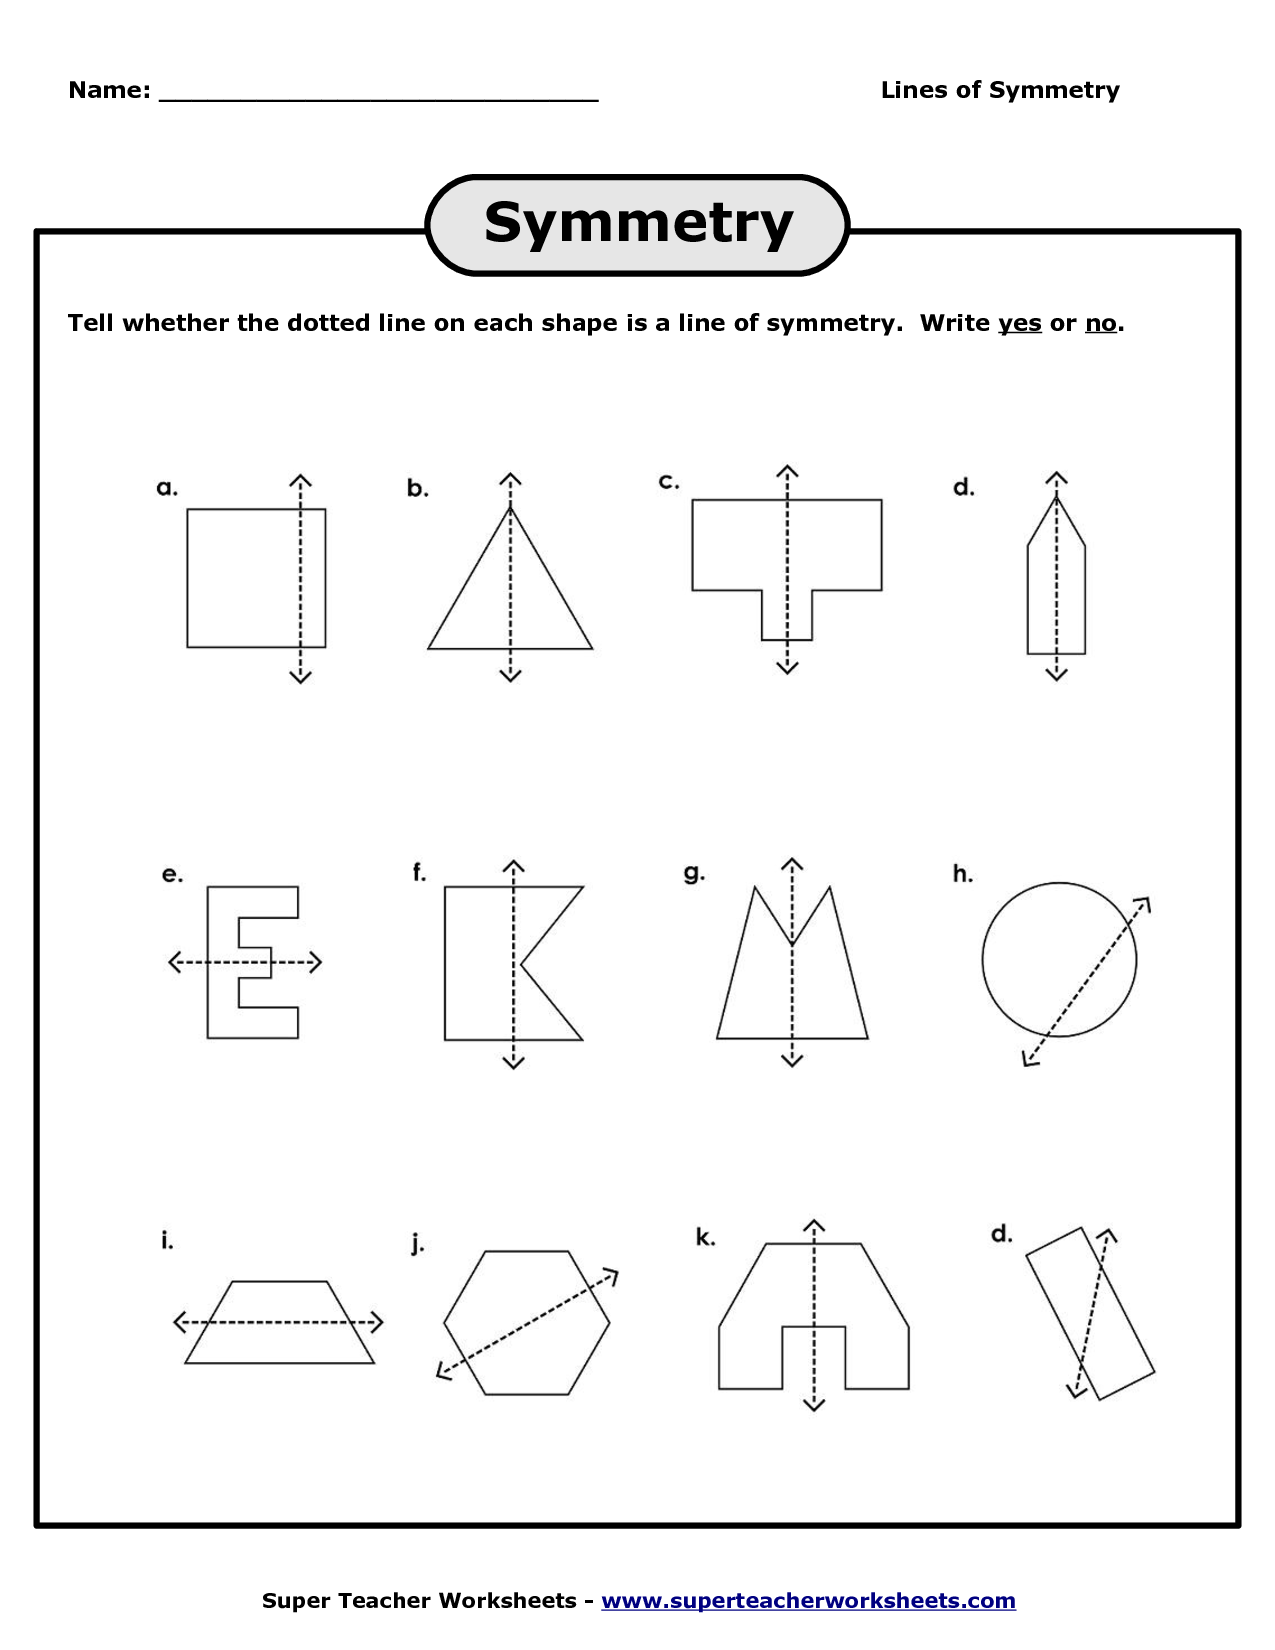 what is line of symmetry example